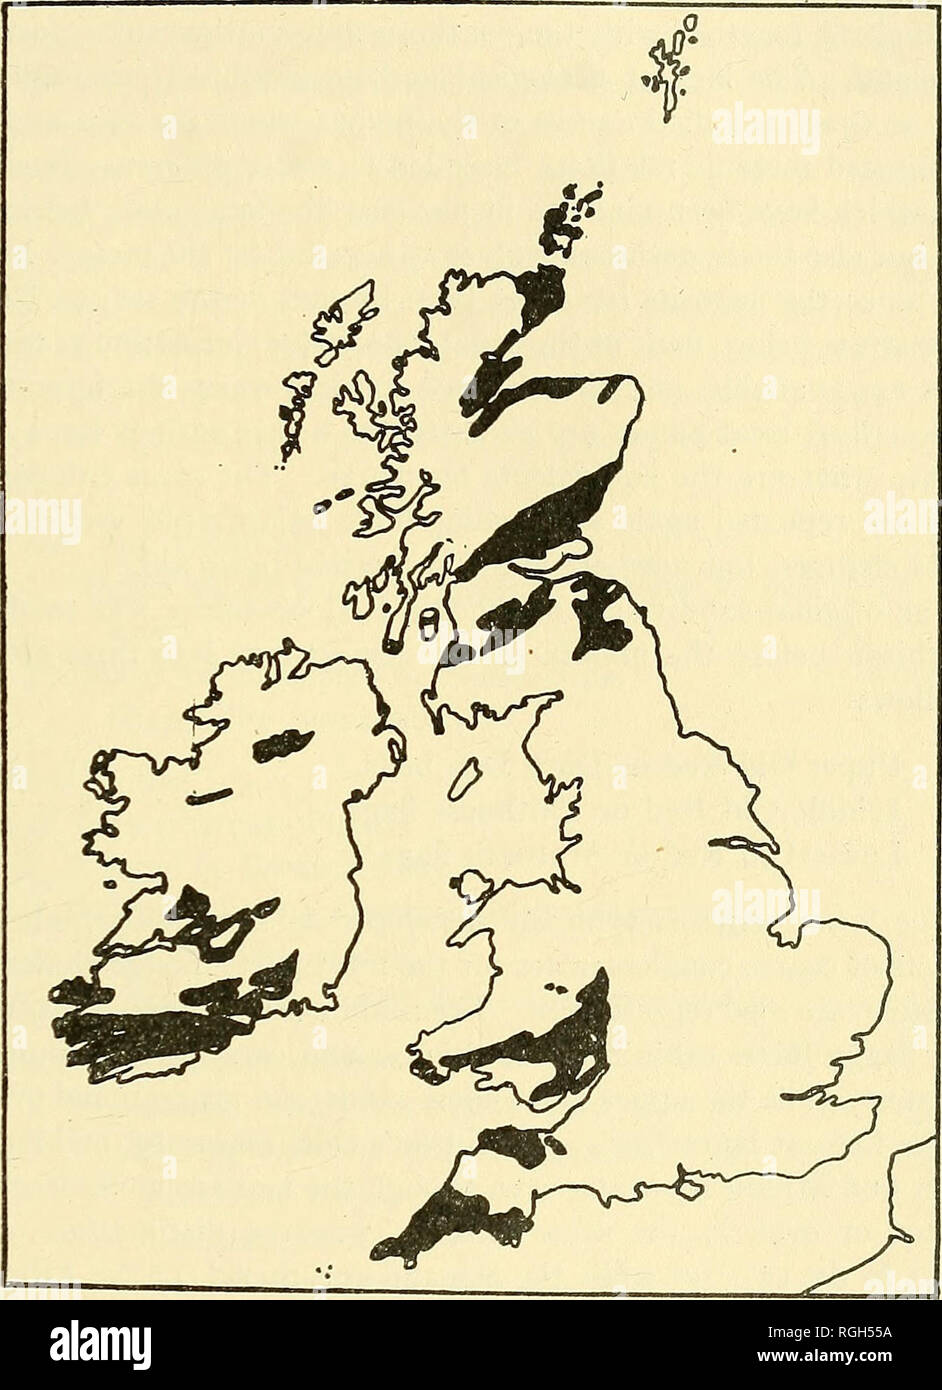 . Bulletin of the Buffalo Society of Natural Sciences. Natural history; Science. BUFFALO SOCIETY OF NATURAL SCIENCES 169 The present outcrops of the Old Red sandstone in the British Isles are for the most part discontinuous and decidedly patchy. They fall roughly into five areas (see index map, fig. 16): (1) The Caithness-. Fig. 16. Sketch Map of British Isles Showing Distribution of the Old Red Sandstone (After Lake and Rastall) Orkney Islands region with a northward continuation into the Shet- lands and a southward one into Sutherland and Rosshire, including the coastal strips on both sides  - Stock Image